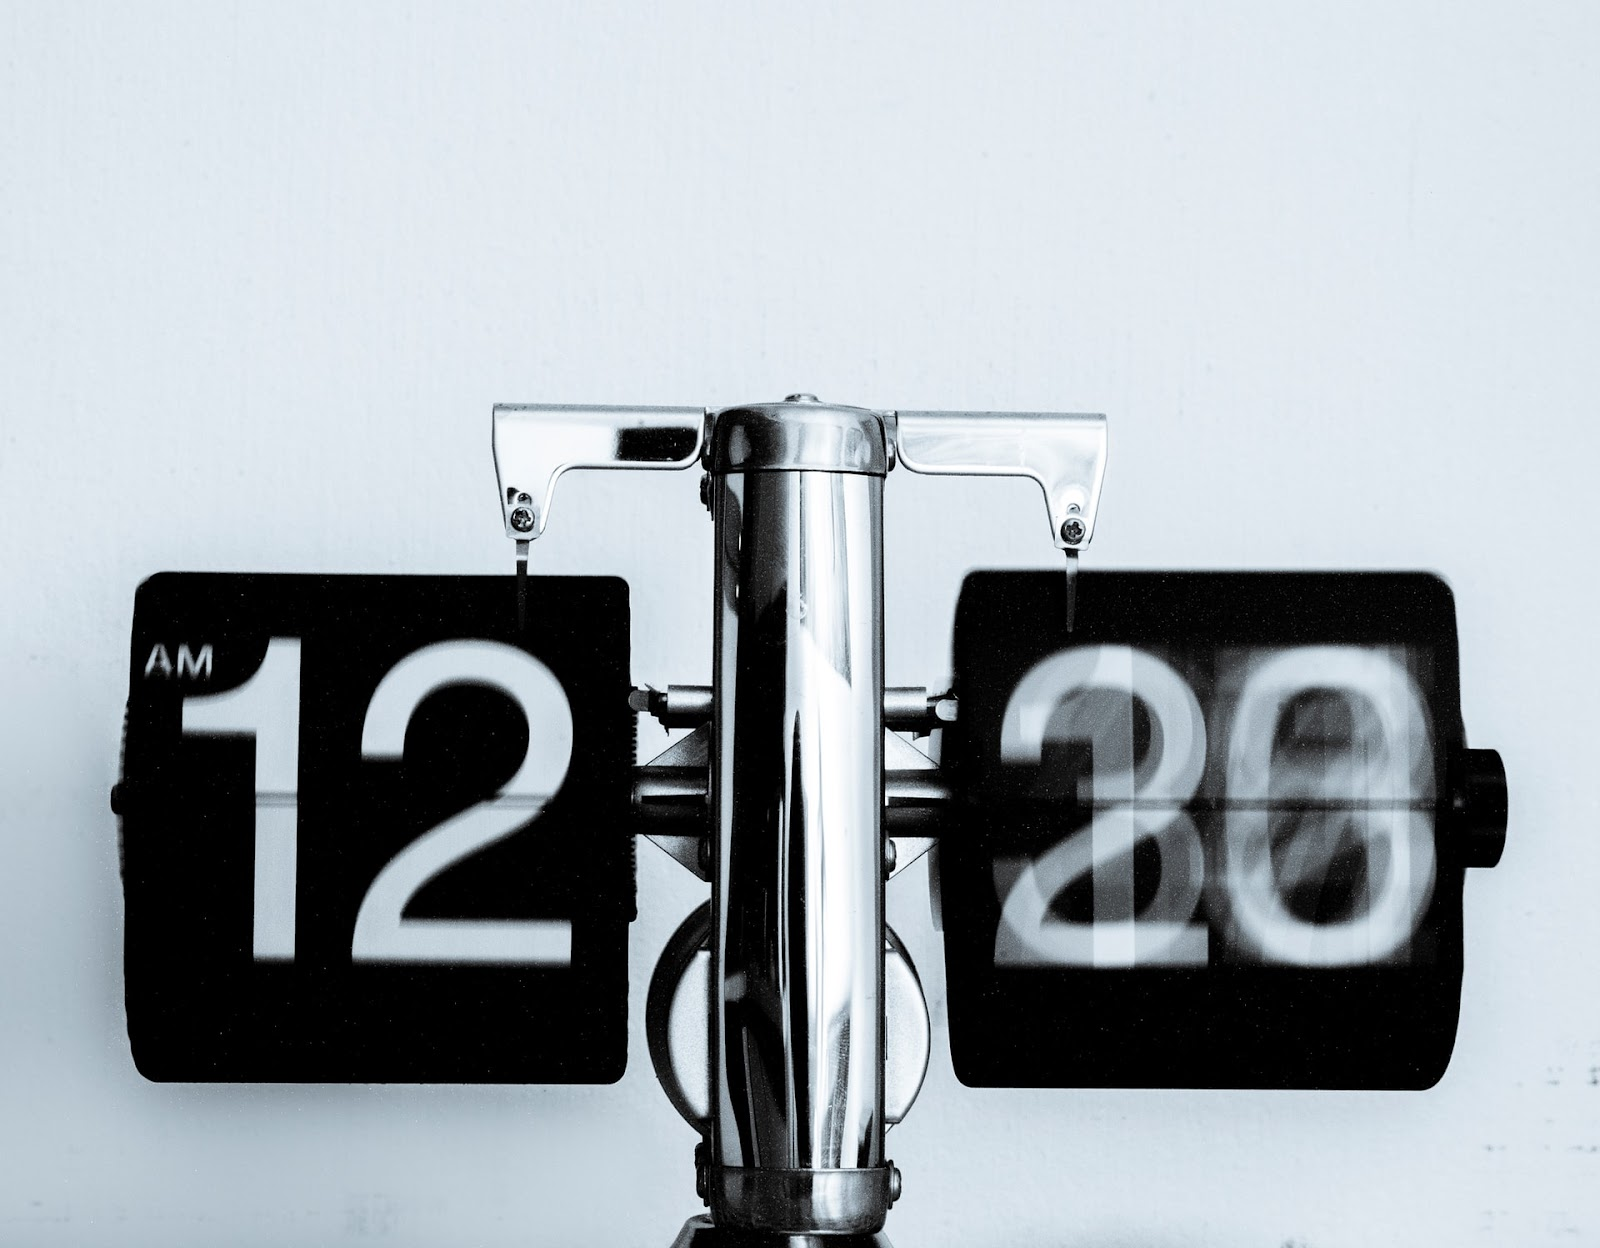 timeline importance while writing a digital marketing proposal